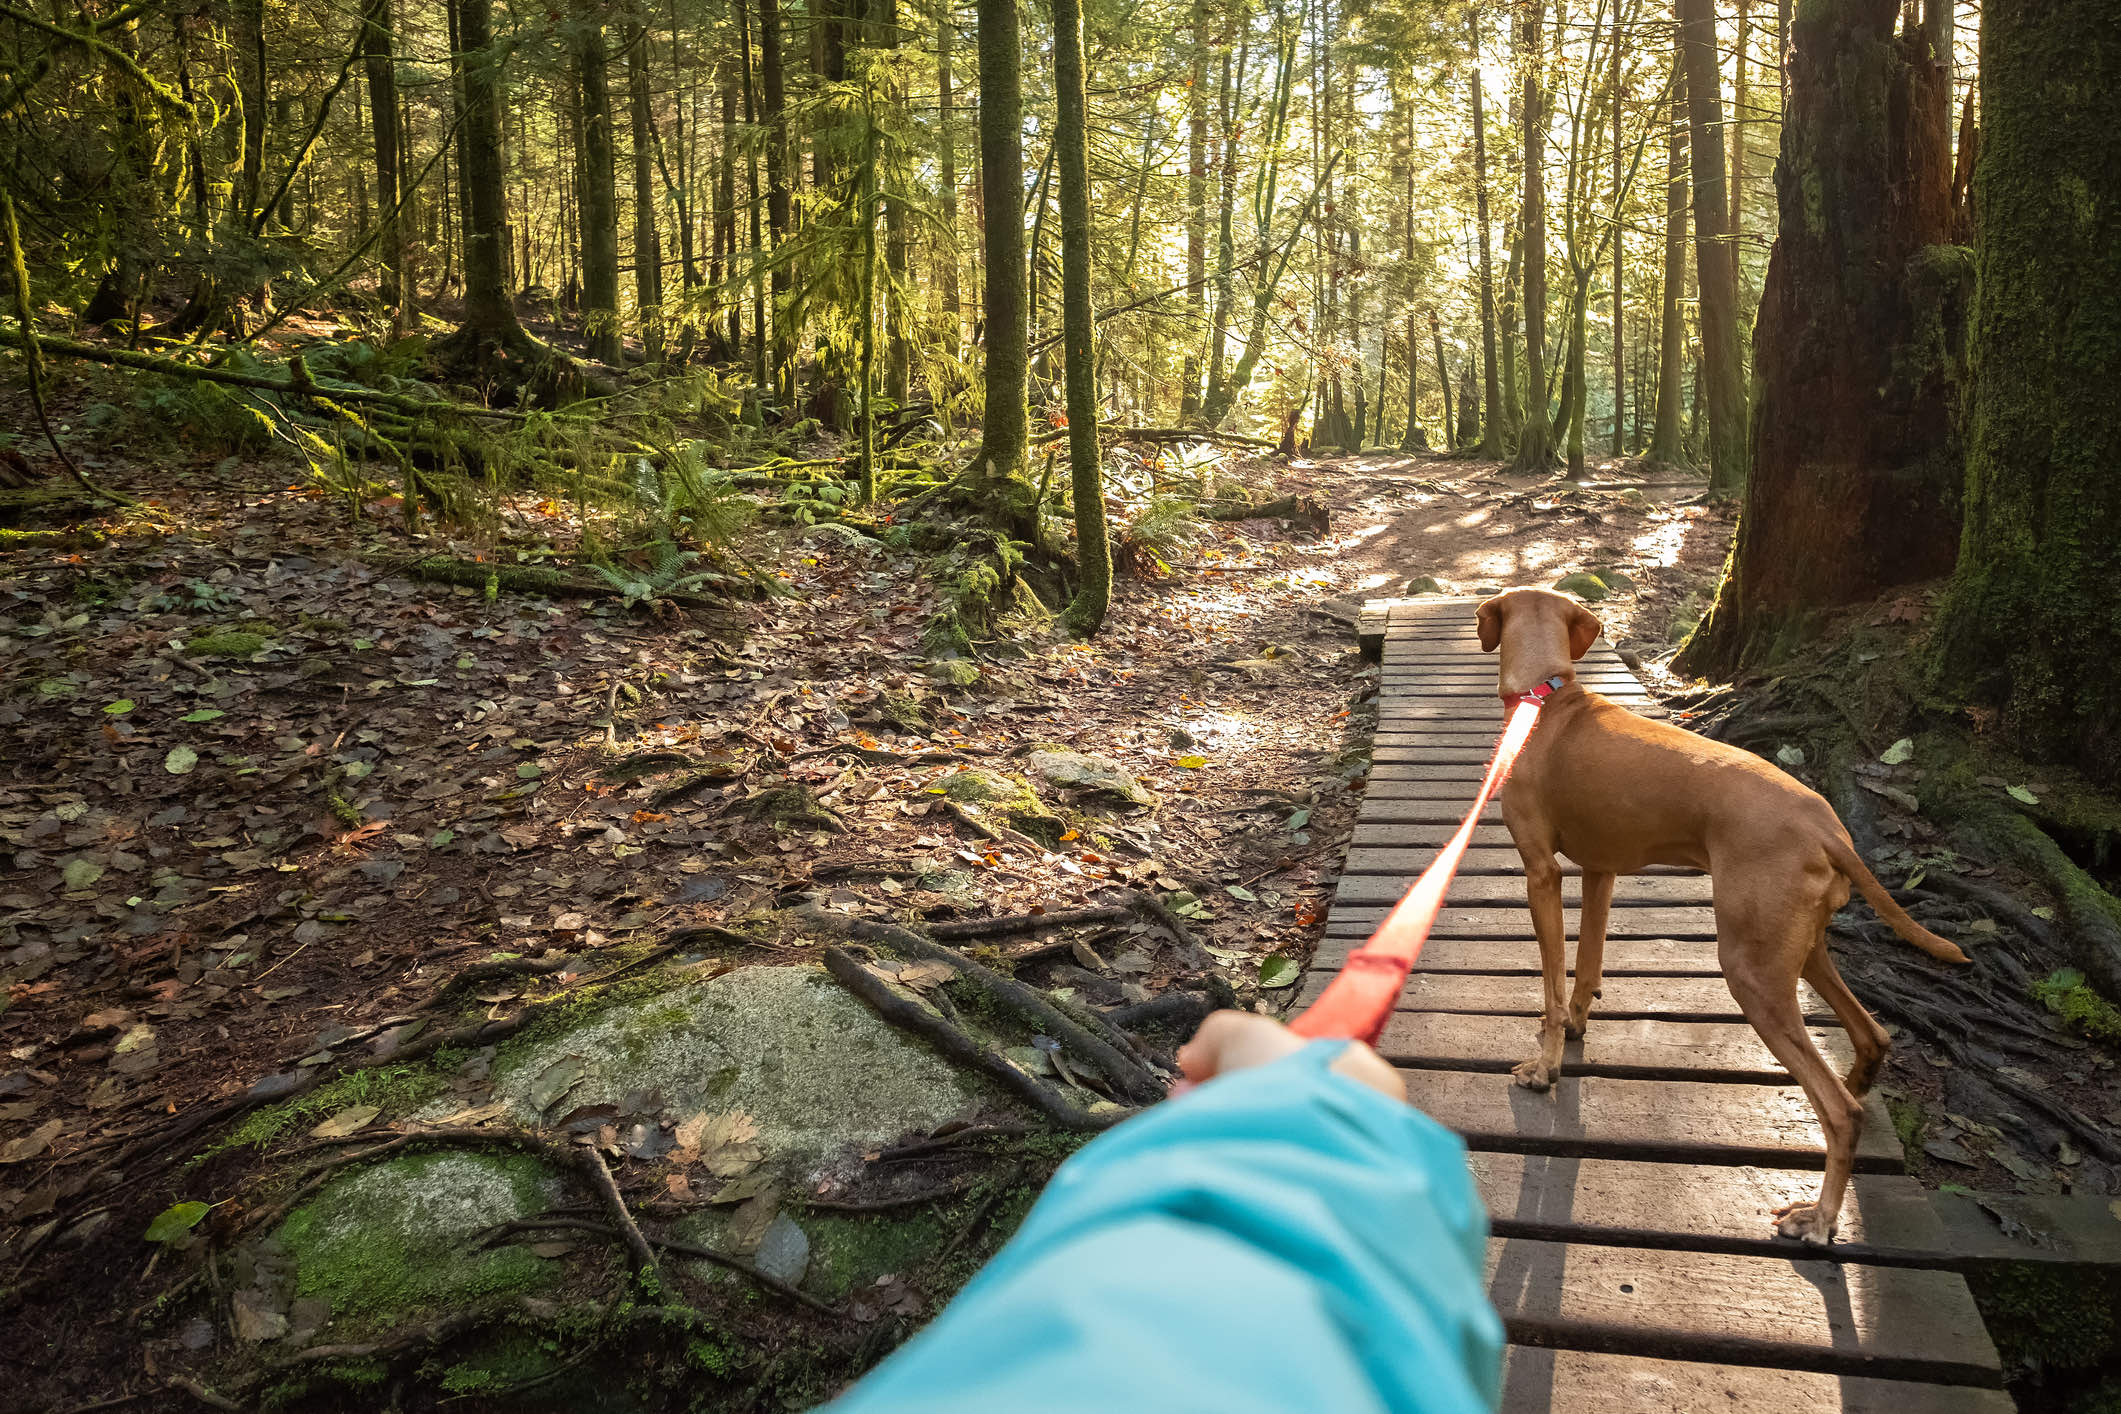 Person on wooden trail in forest